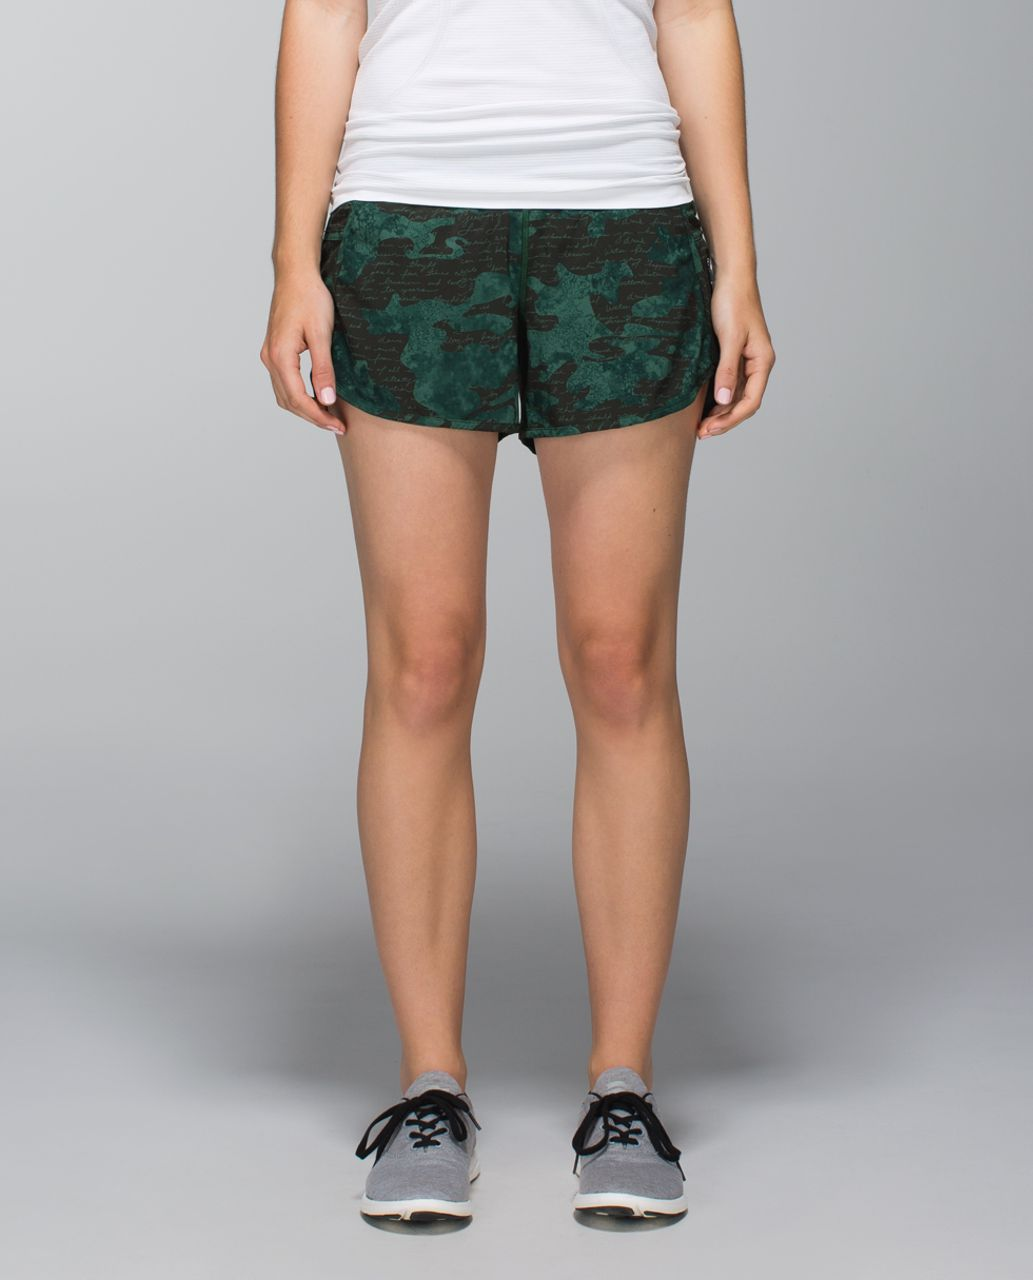 Lululemon Tracker Short II *4-way Stretch - Manifesto Script Camo Fuel Green / Fuel Green